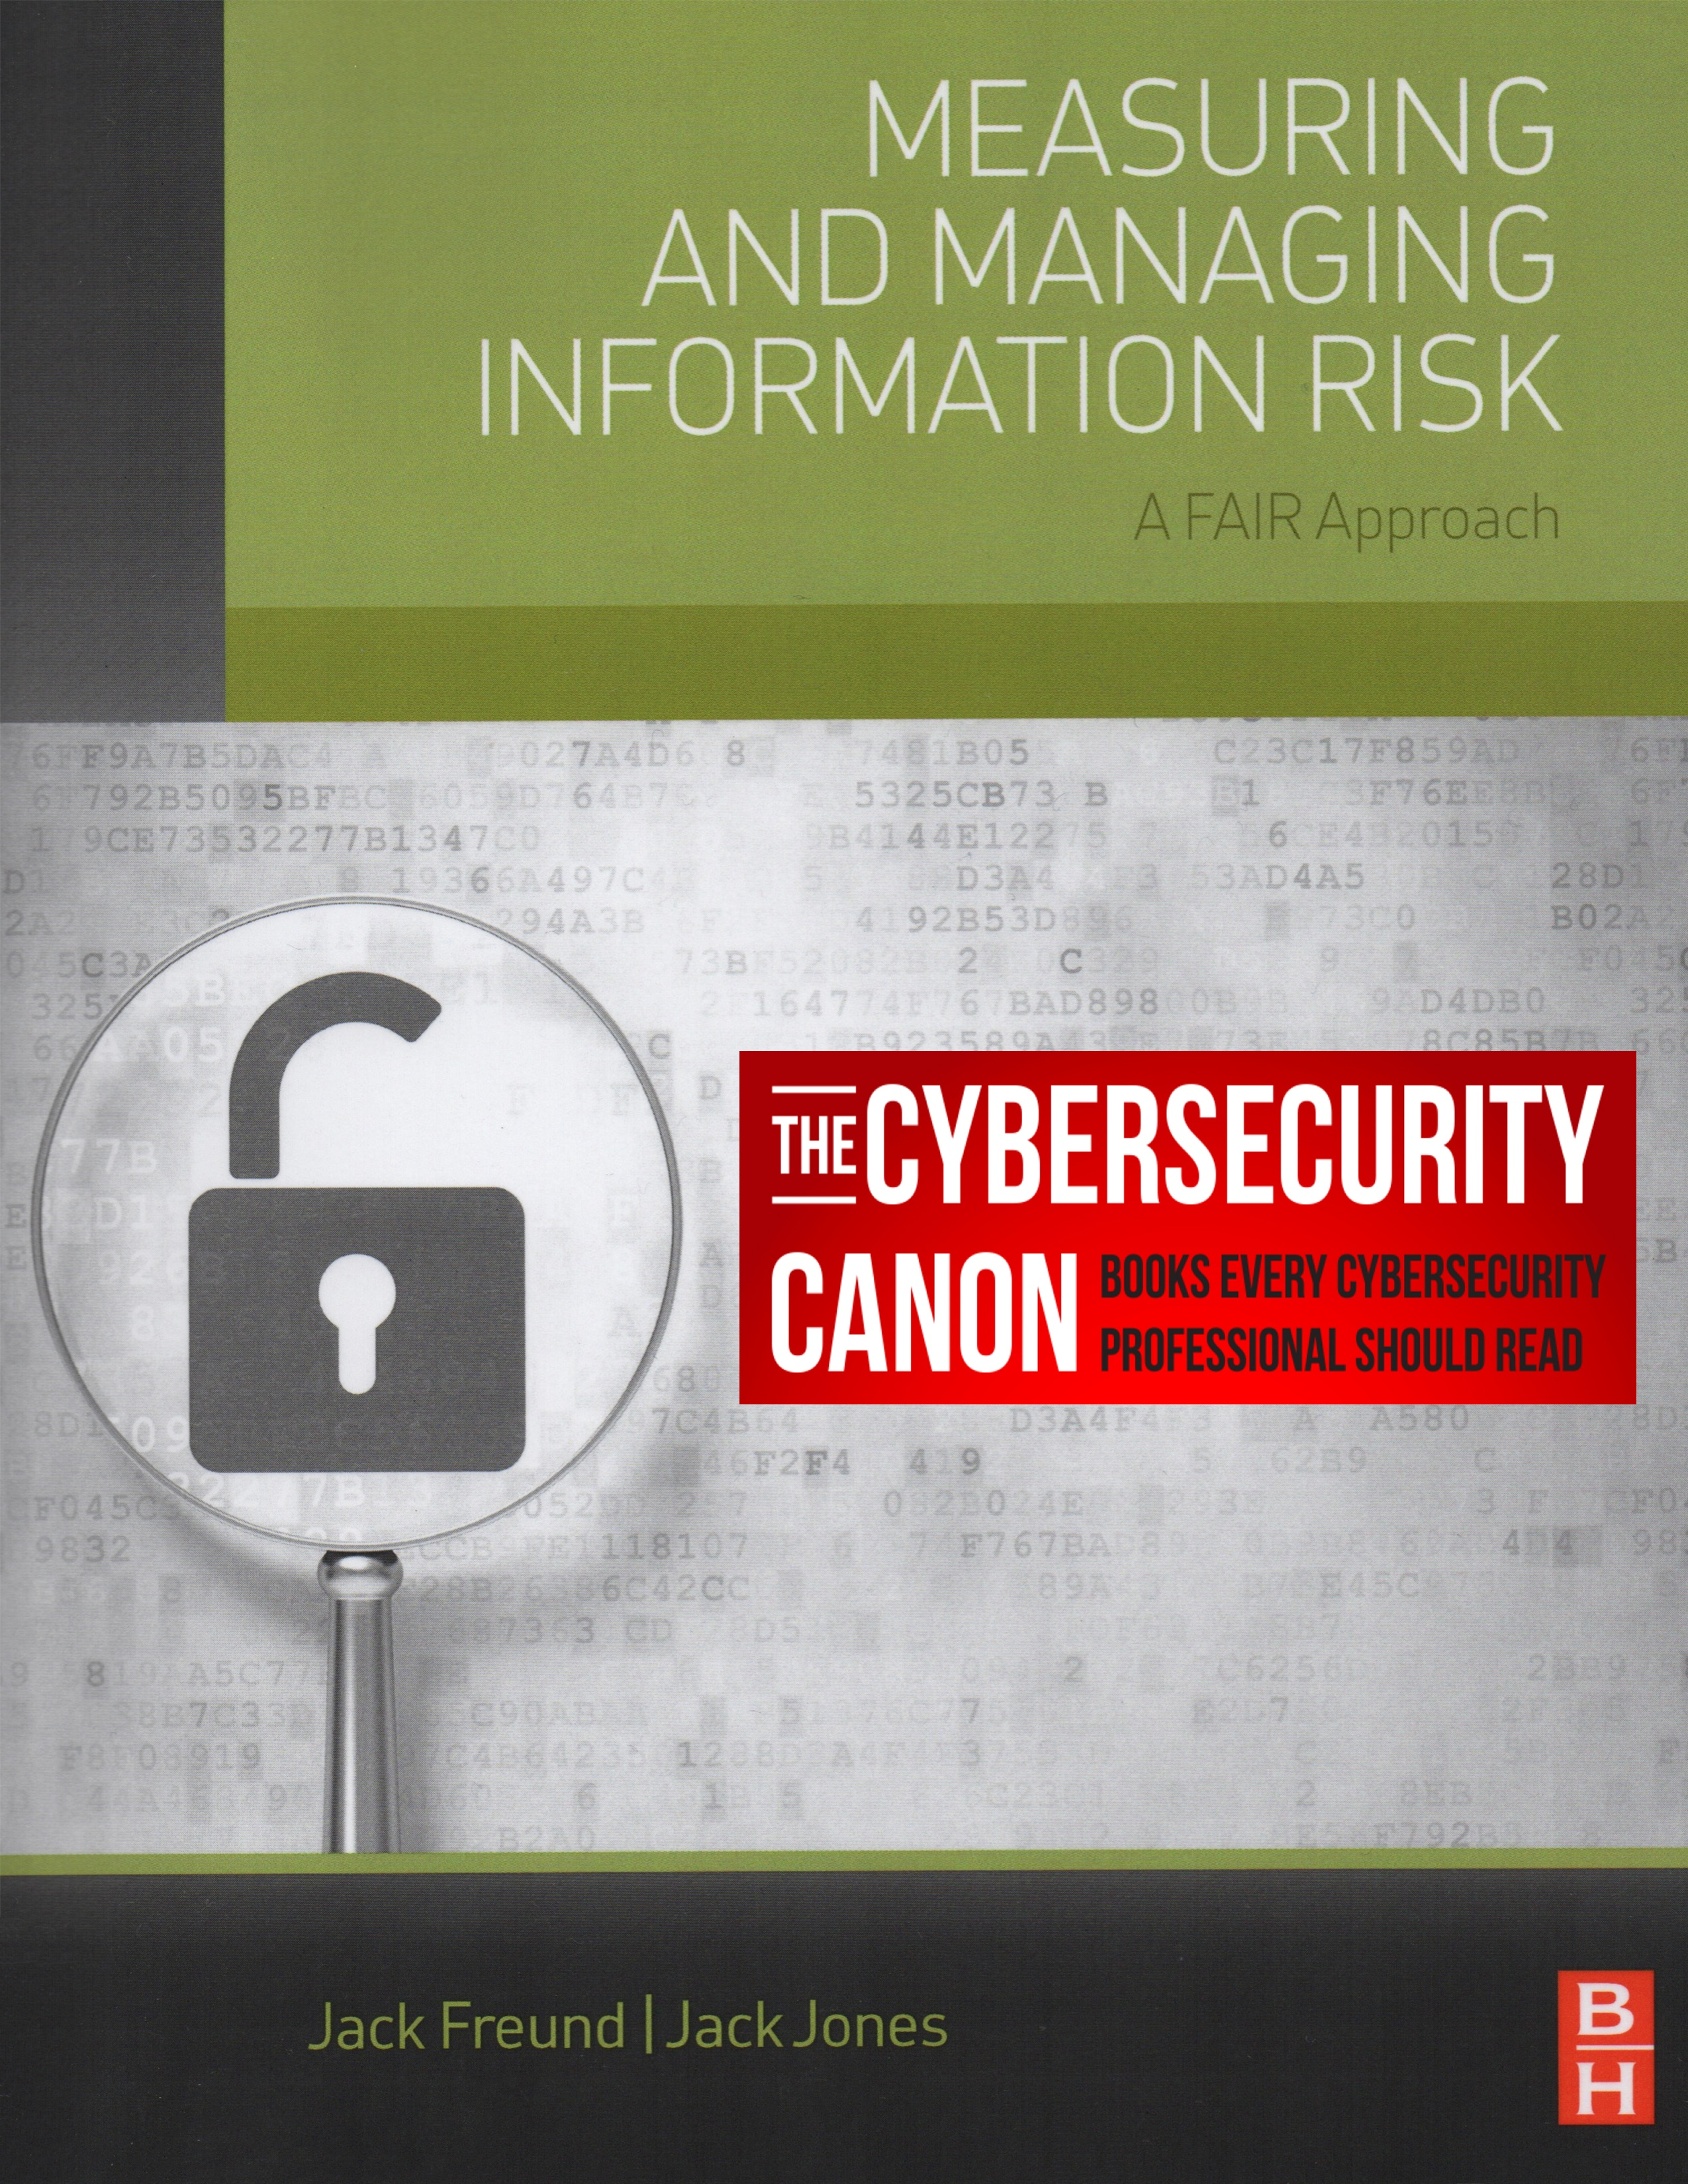 FAIR_Book_Inducted__2016__Cybersecurity__Canon.jpg